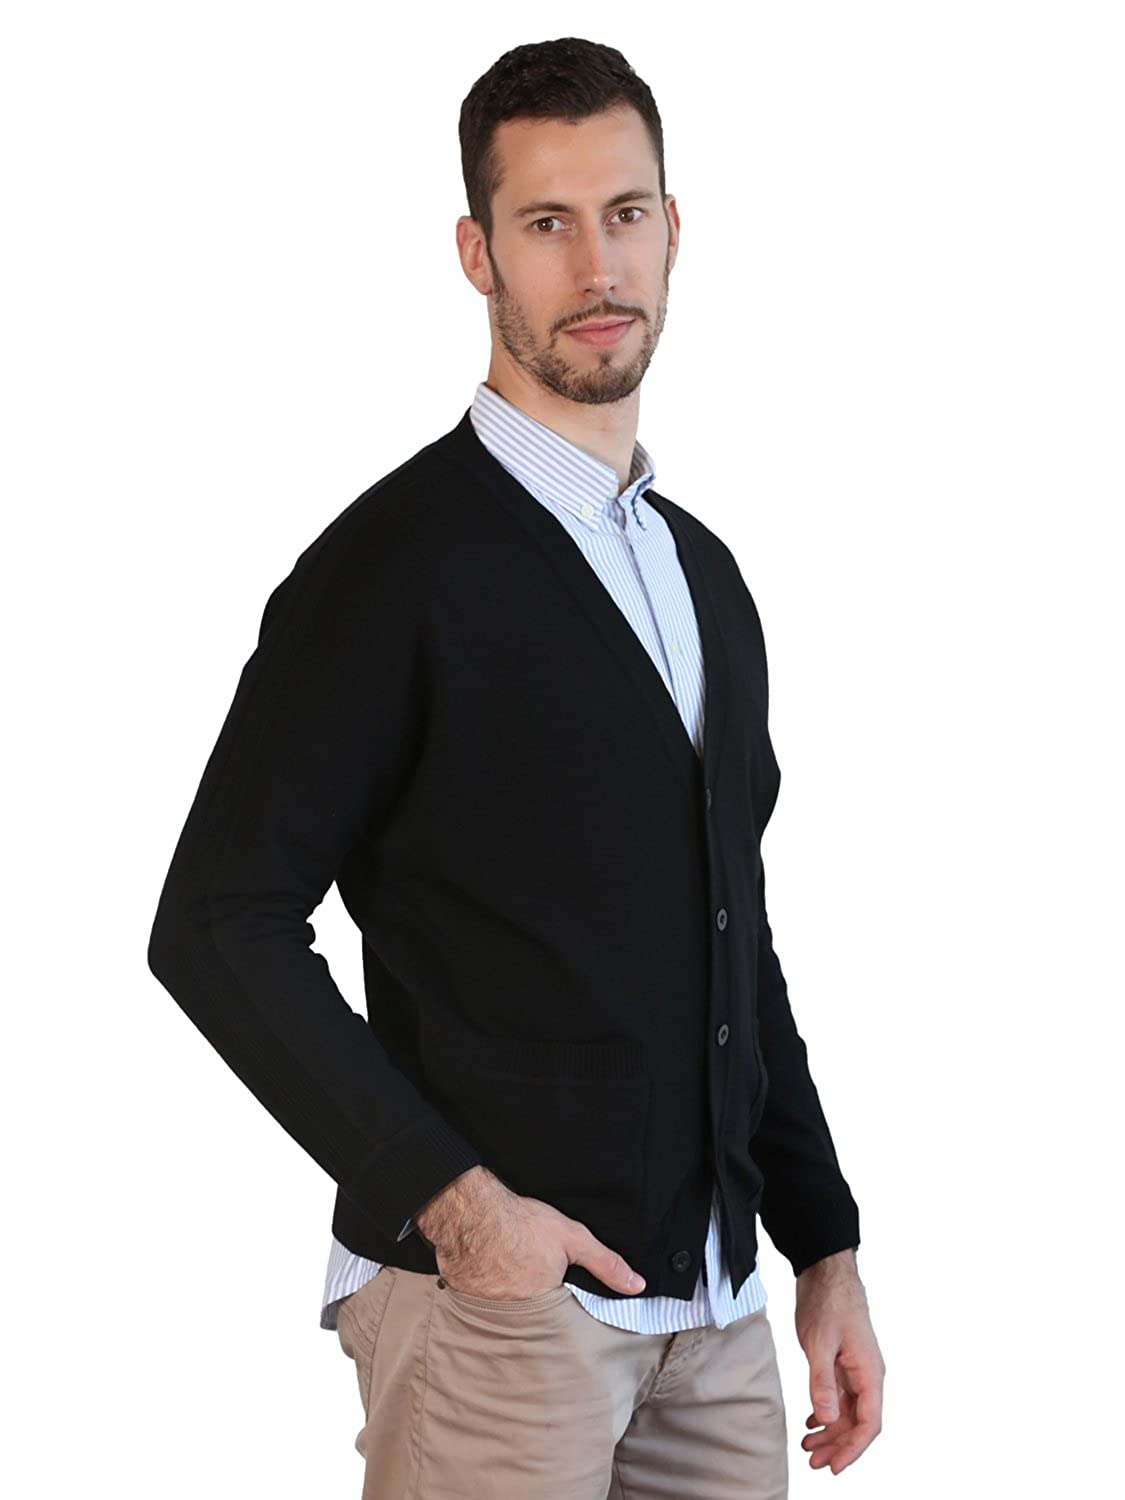 MENS CARDIGAN SWEATER BLACK KNITTED CLASSIC FIT V-NECK BUTTON UP AND POCKETS MARMO DI CARRARA MAR500